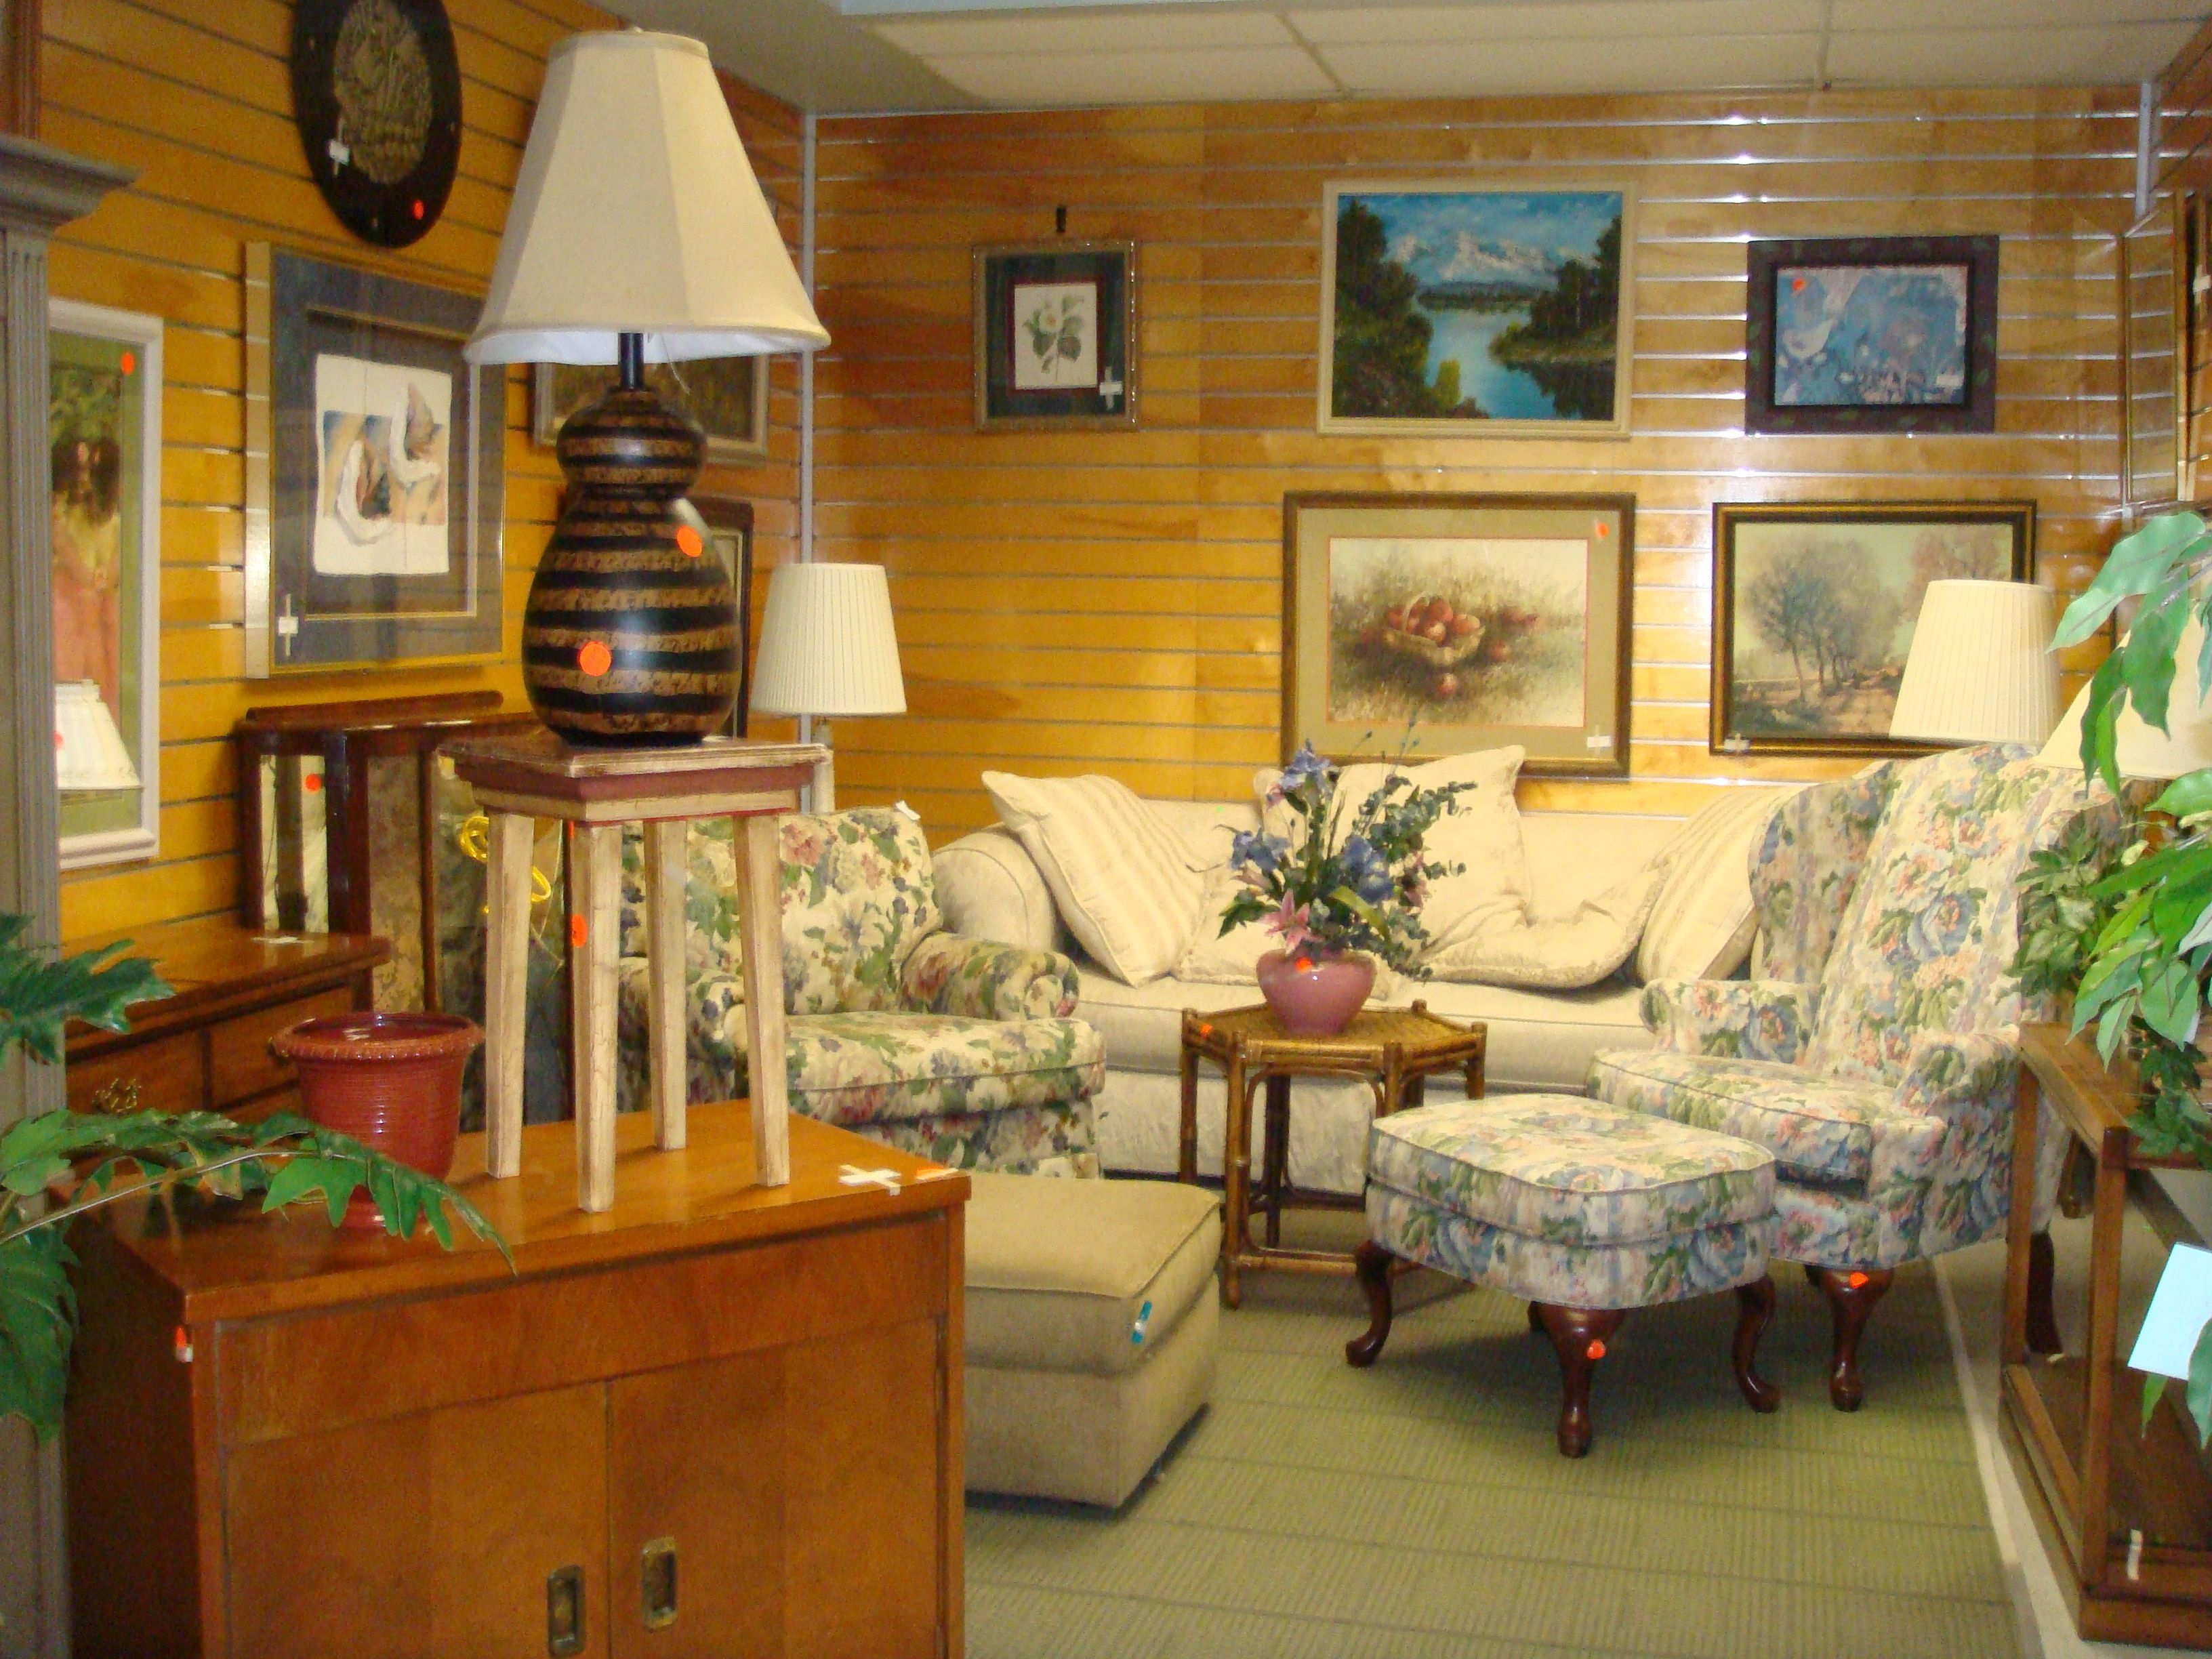 If you are looking for second hand furniture, housewares, wall art ...